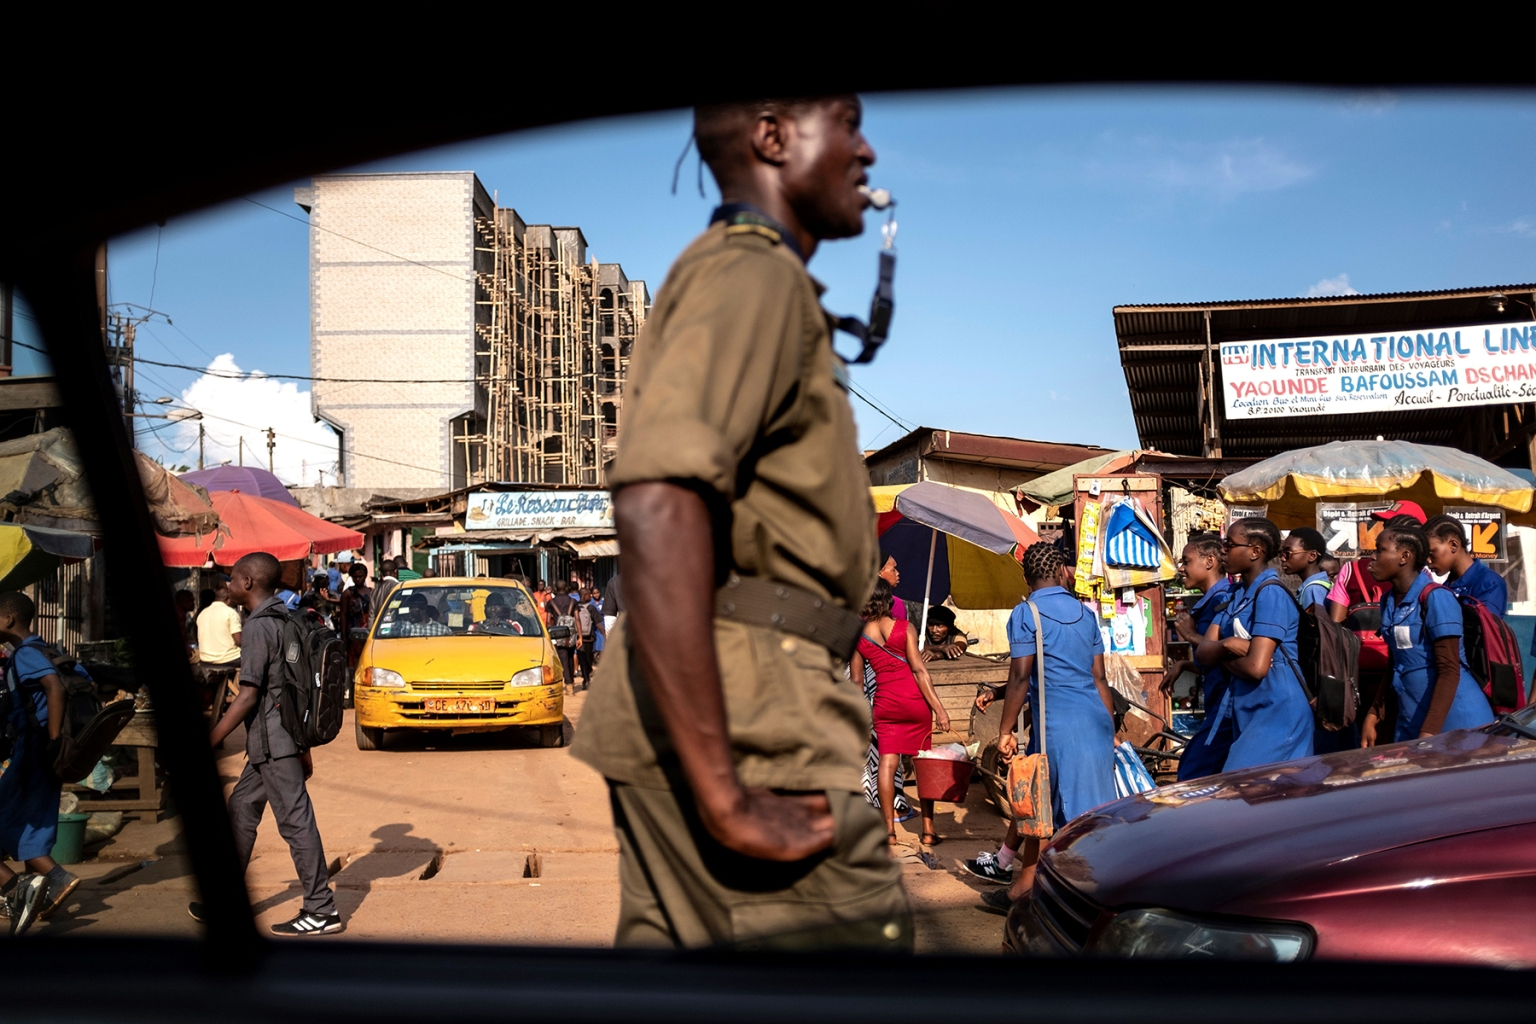 An officer directs traffic at a market in Yaounde, Cameroon, on Oct. 1. MARCO LONGARI/AFP/Getty Images